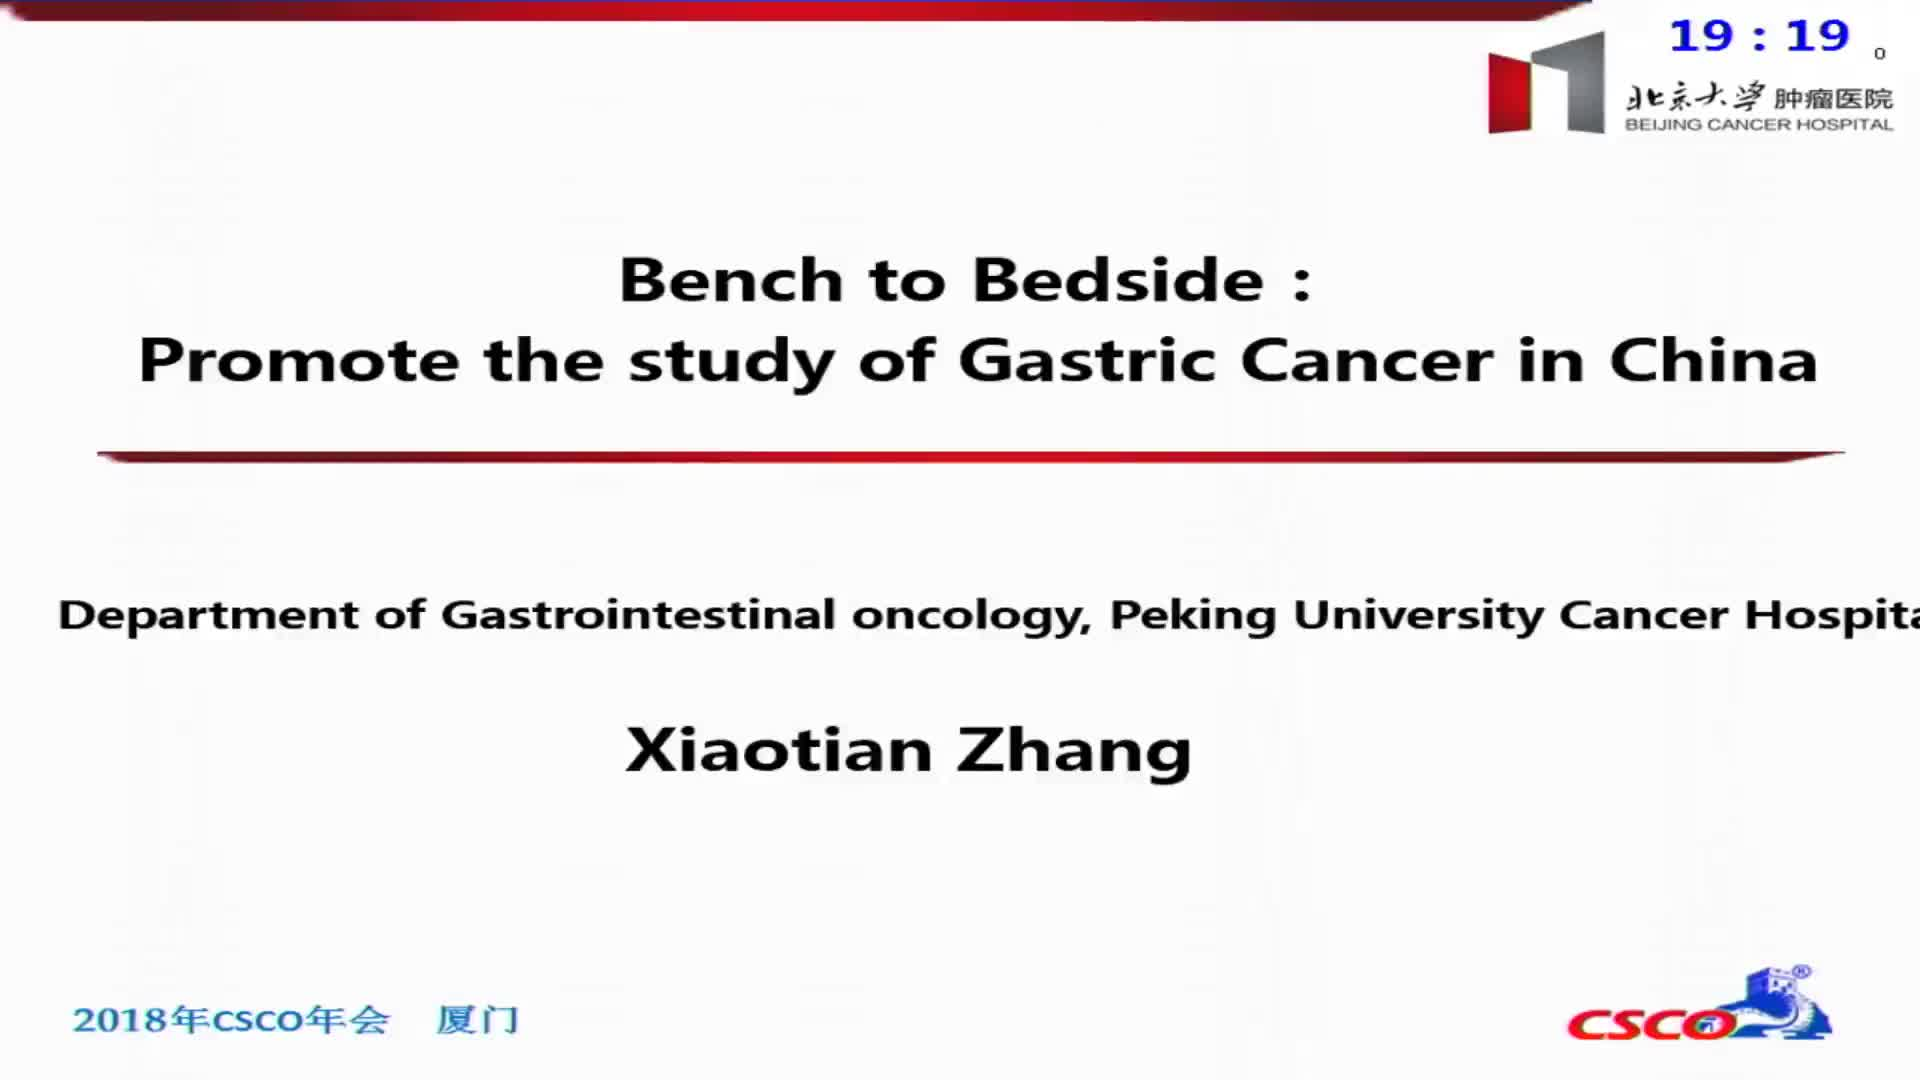 B to B: Improve the study of gastric cancer in China